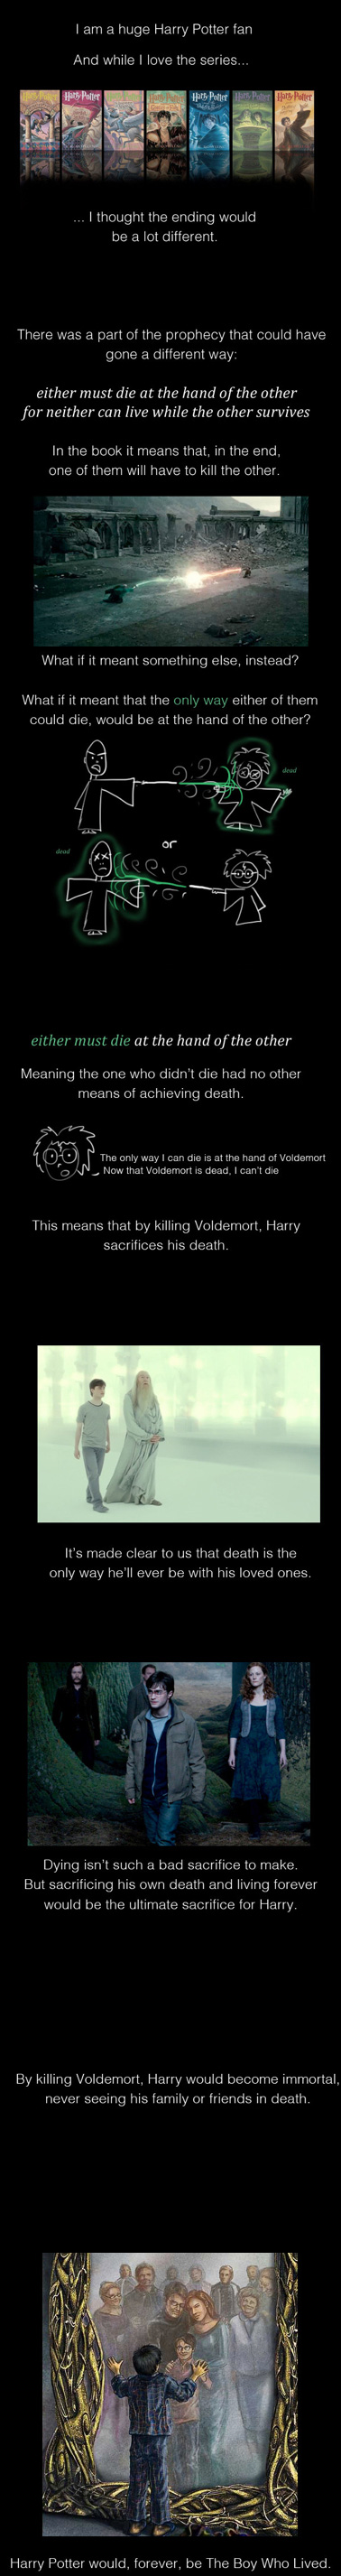 Better Harry Potter Ending